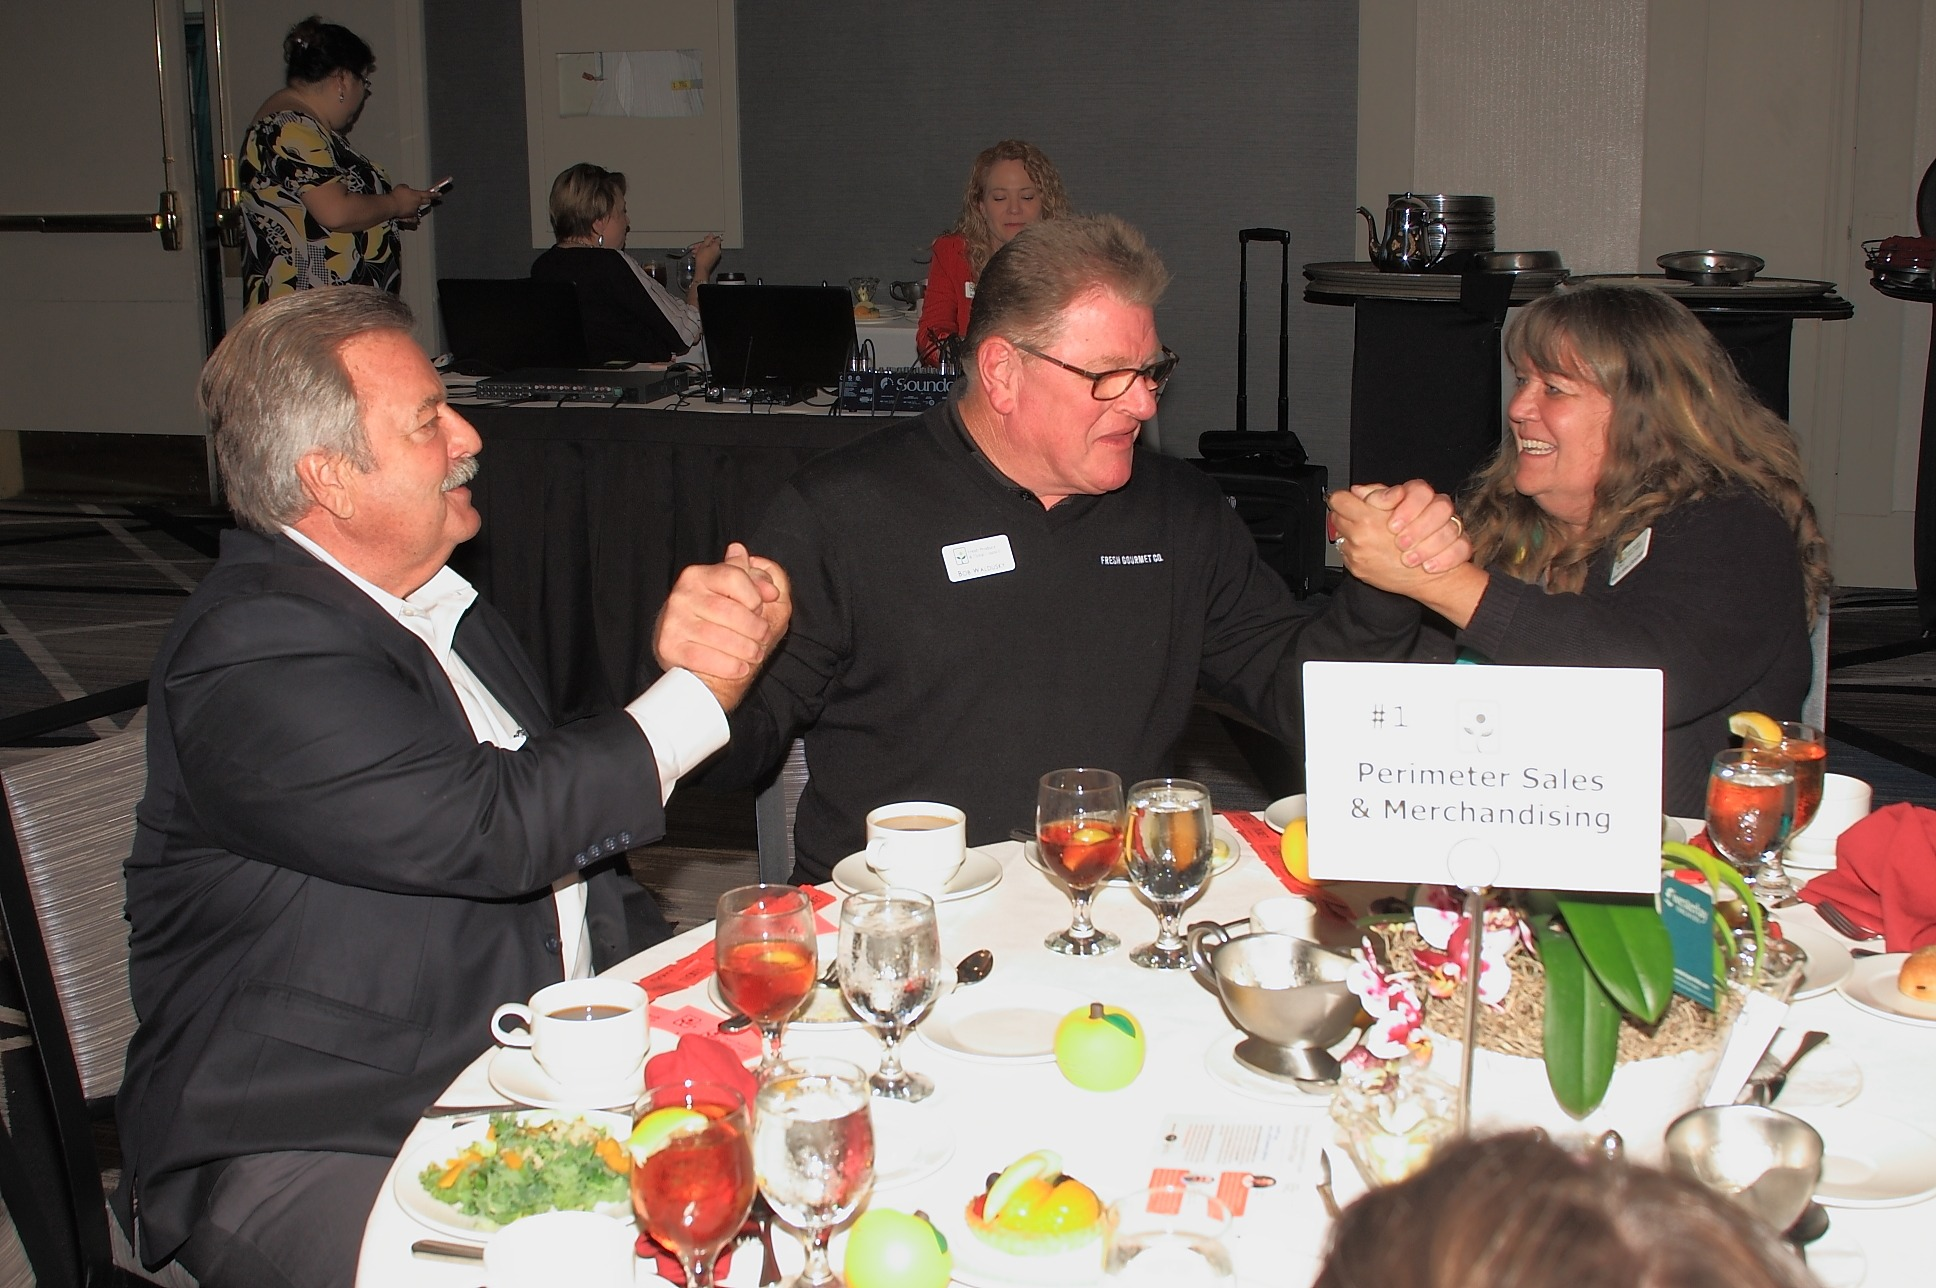 Bob Waldusky of Fresh Gourmet Company negoatiates with Brad Martin and Mary Ann Gunther of Perimeter Sales and Merchandising